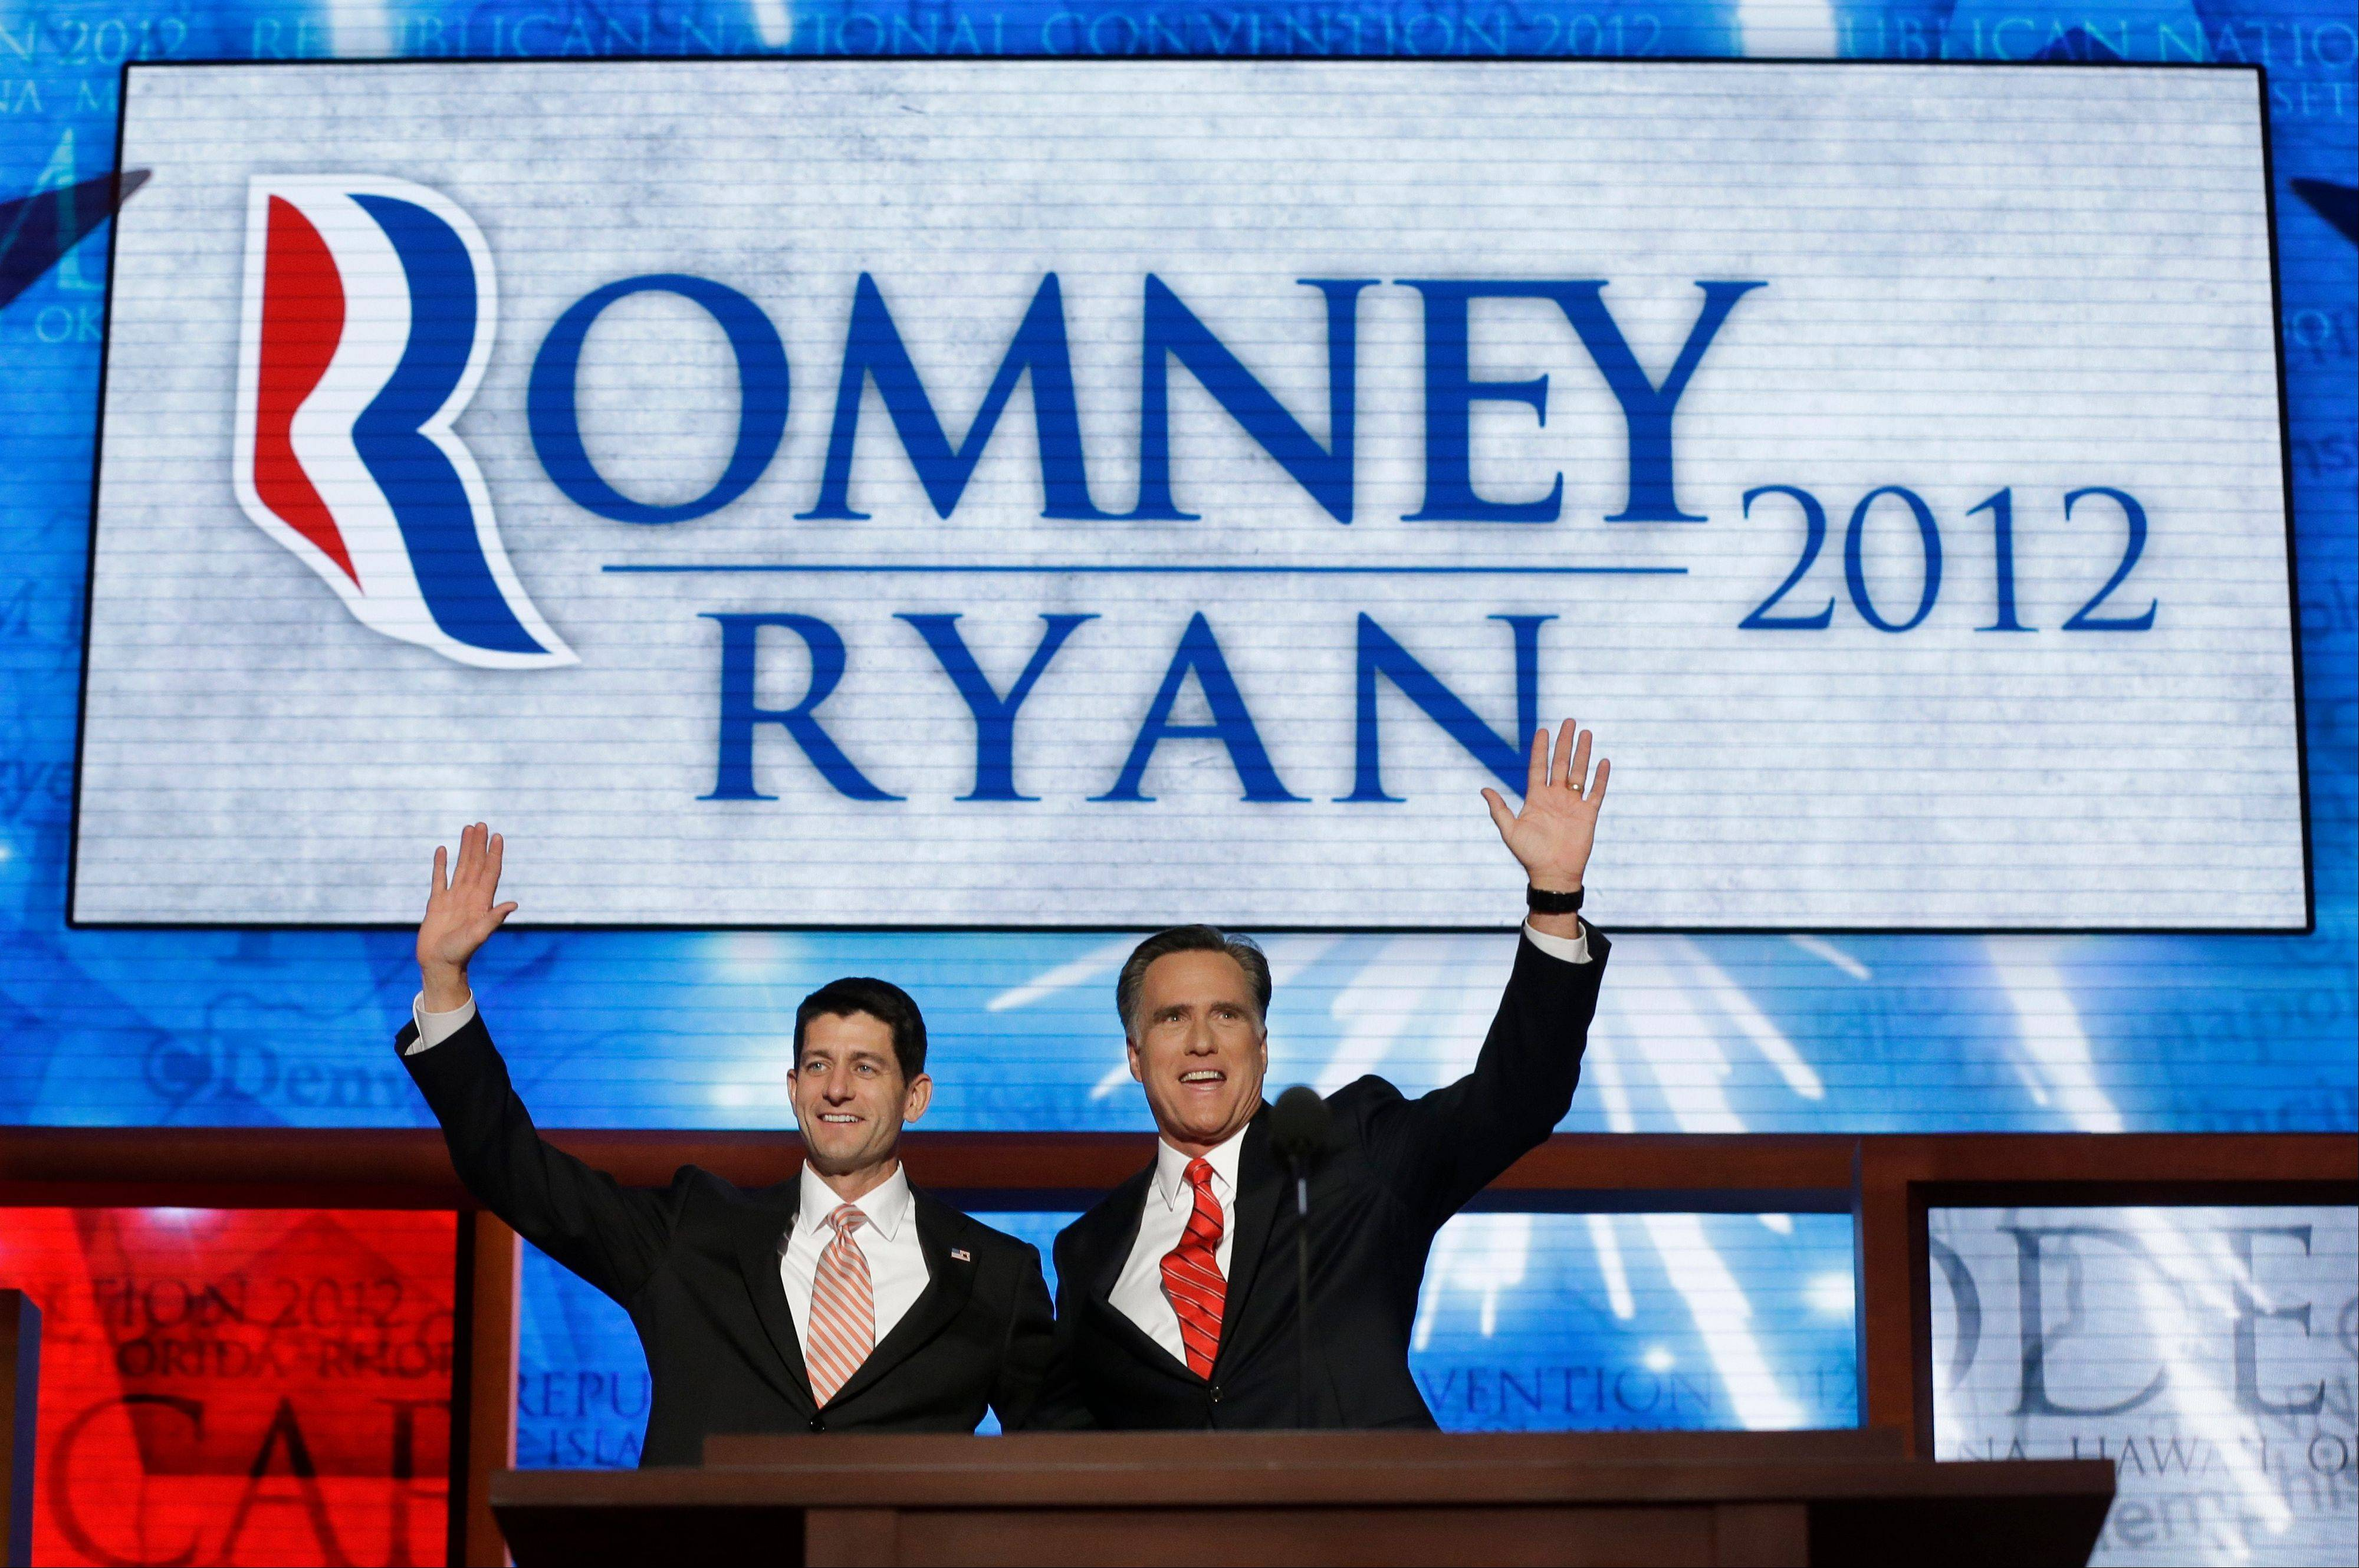 Republican presidential nominee Mitt Romney joined Thursday by Republican vice presidential nominee, Rep. Paul Ryan, waves to delegates. For the first time since 1952 the top candidates didn't talk of war in their acceptance speeches.